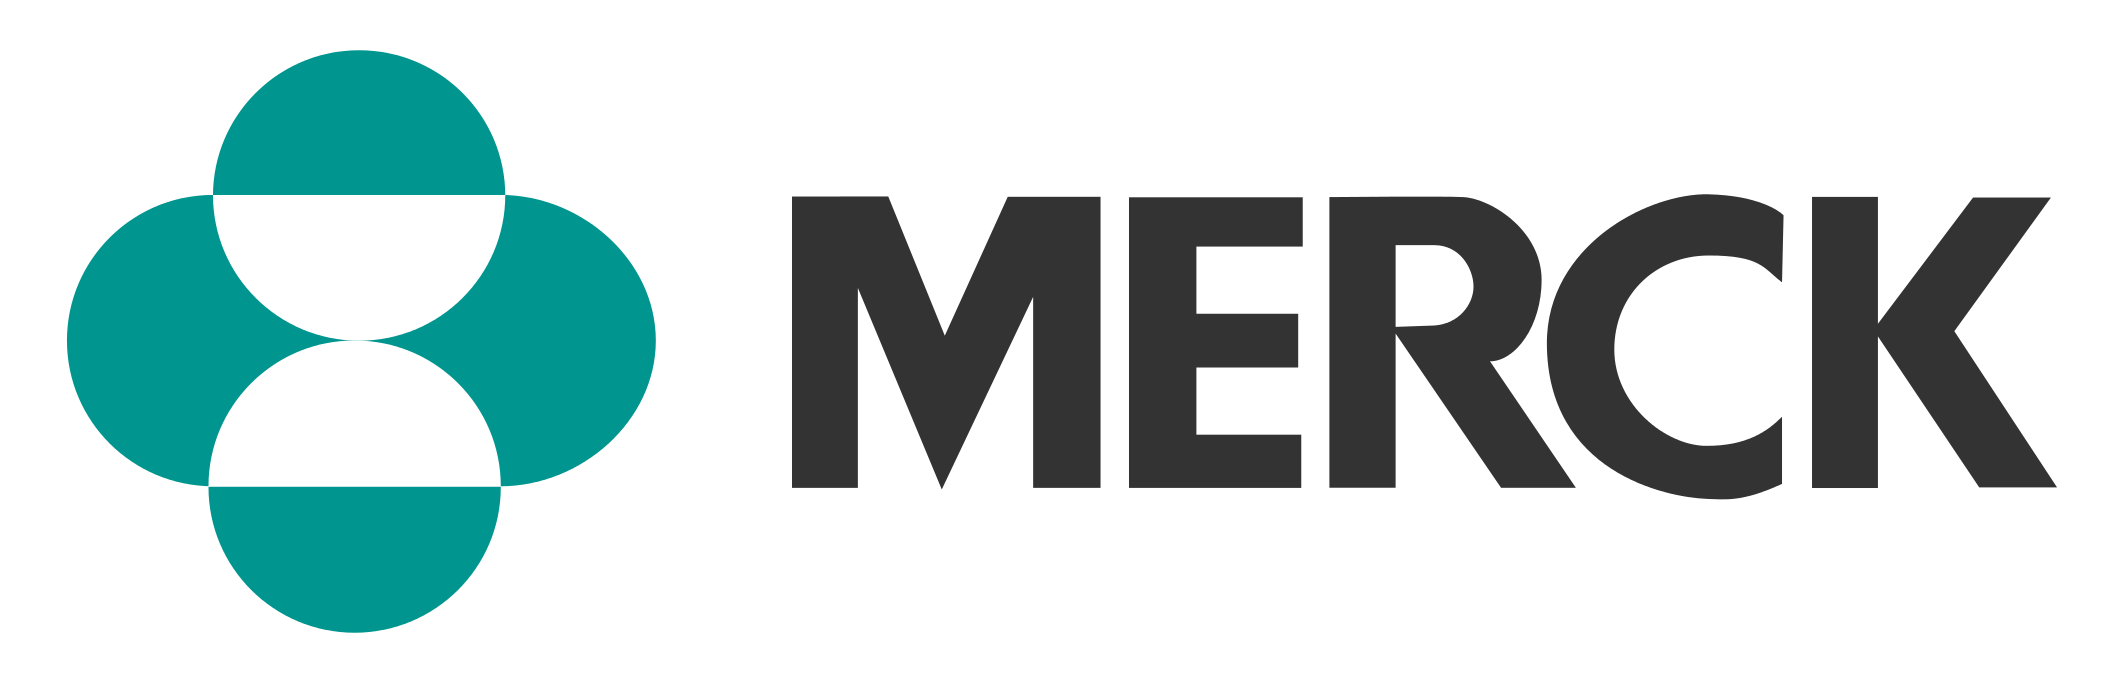 College of Pharmacy Merck logo